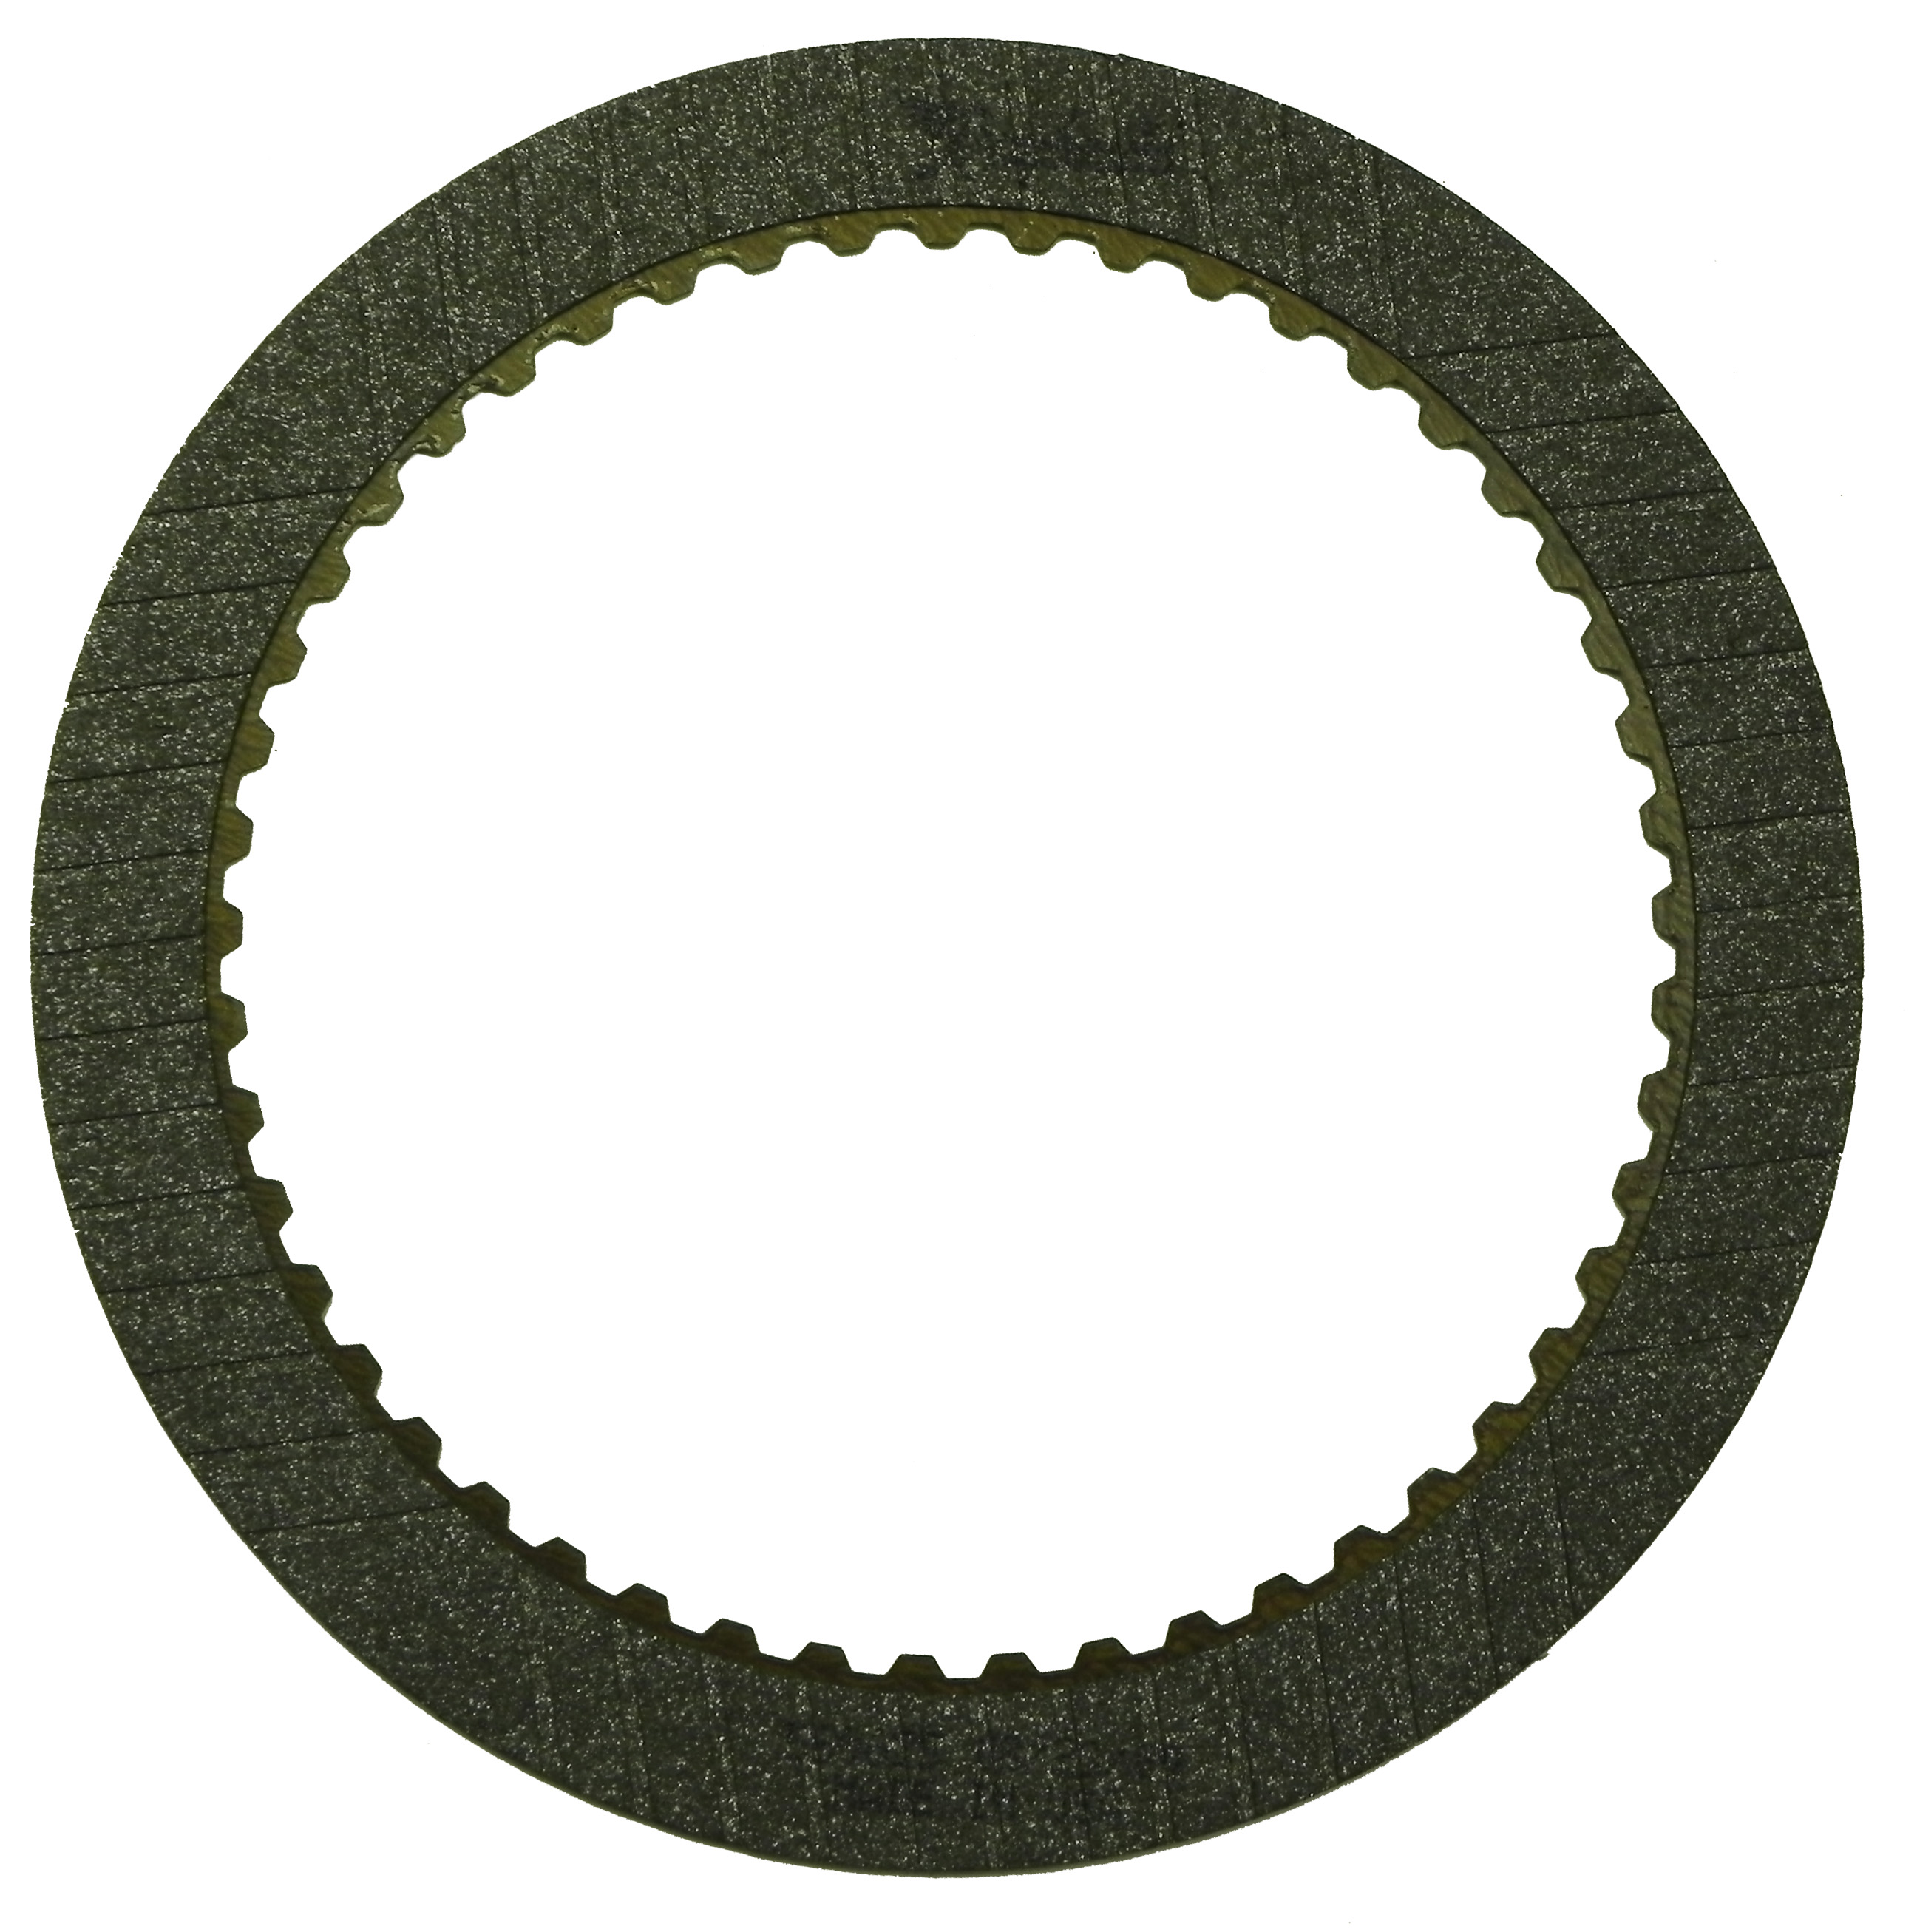 010, 087, 089, 090 Graphitic Friction Clutch Plate